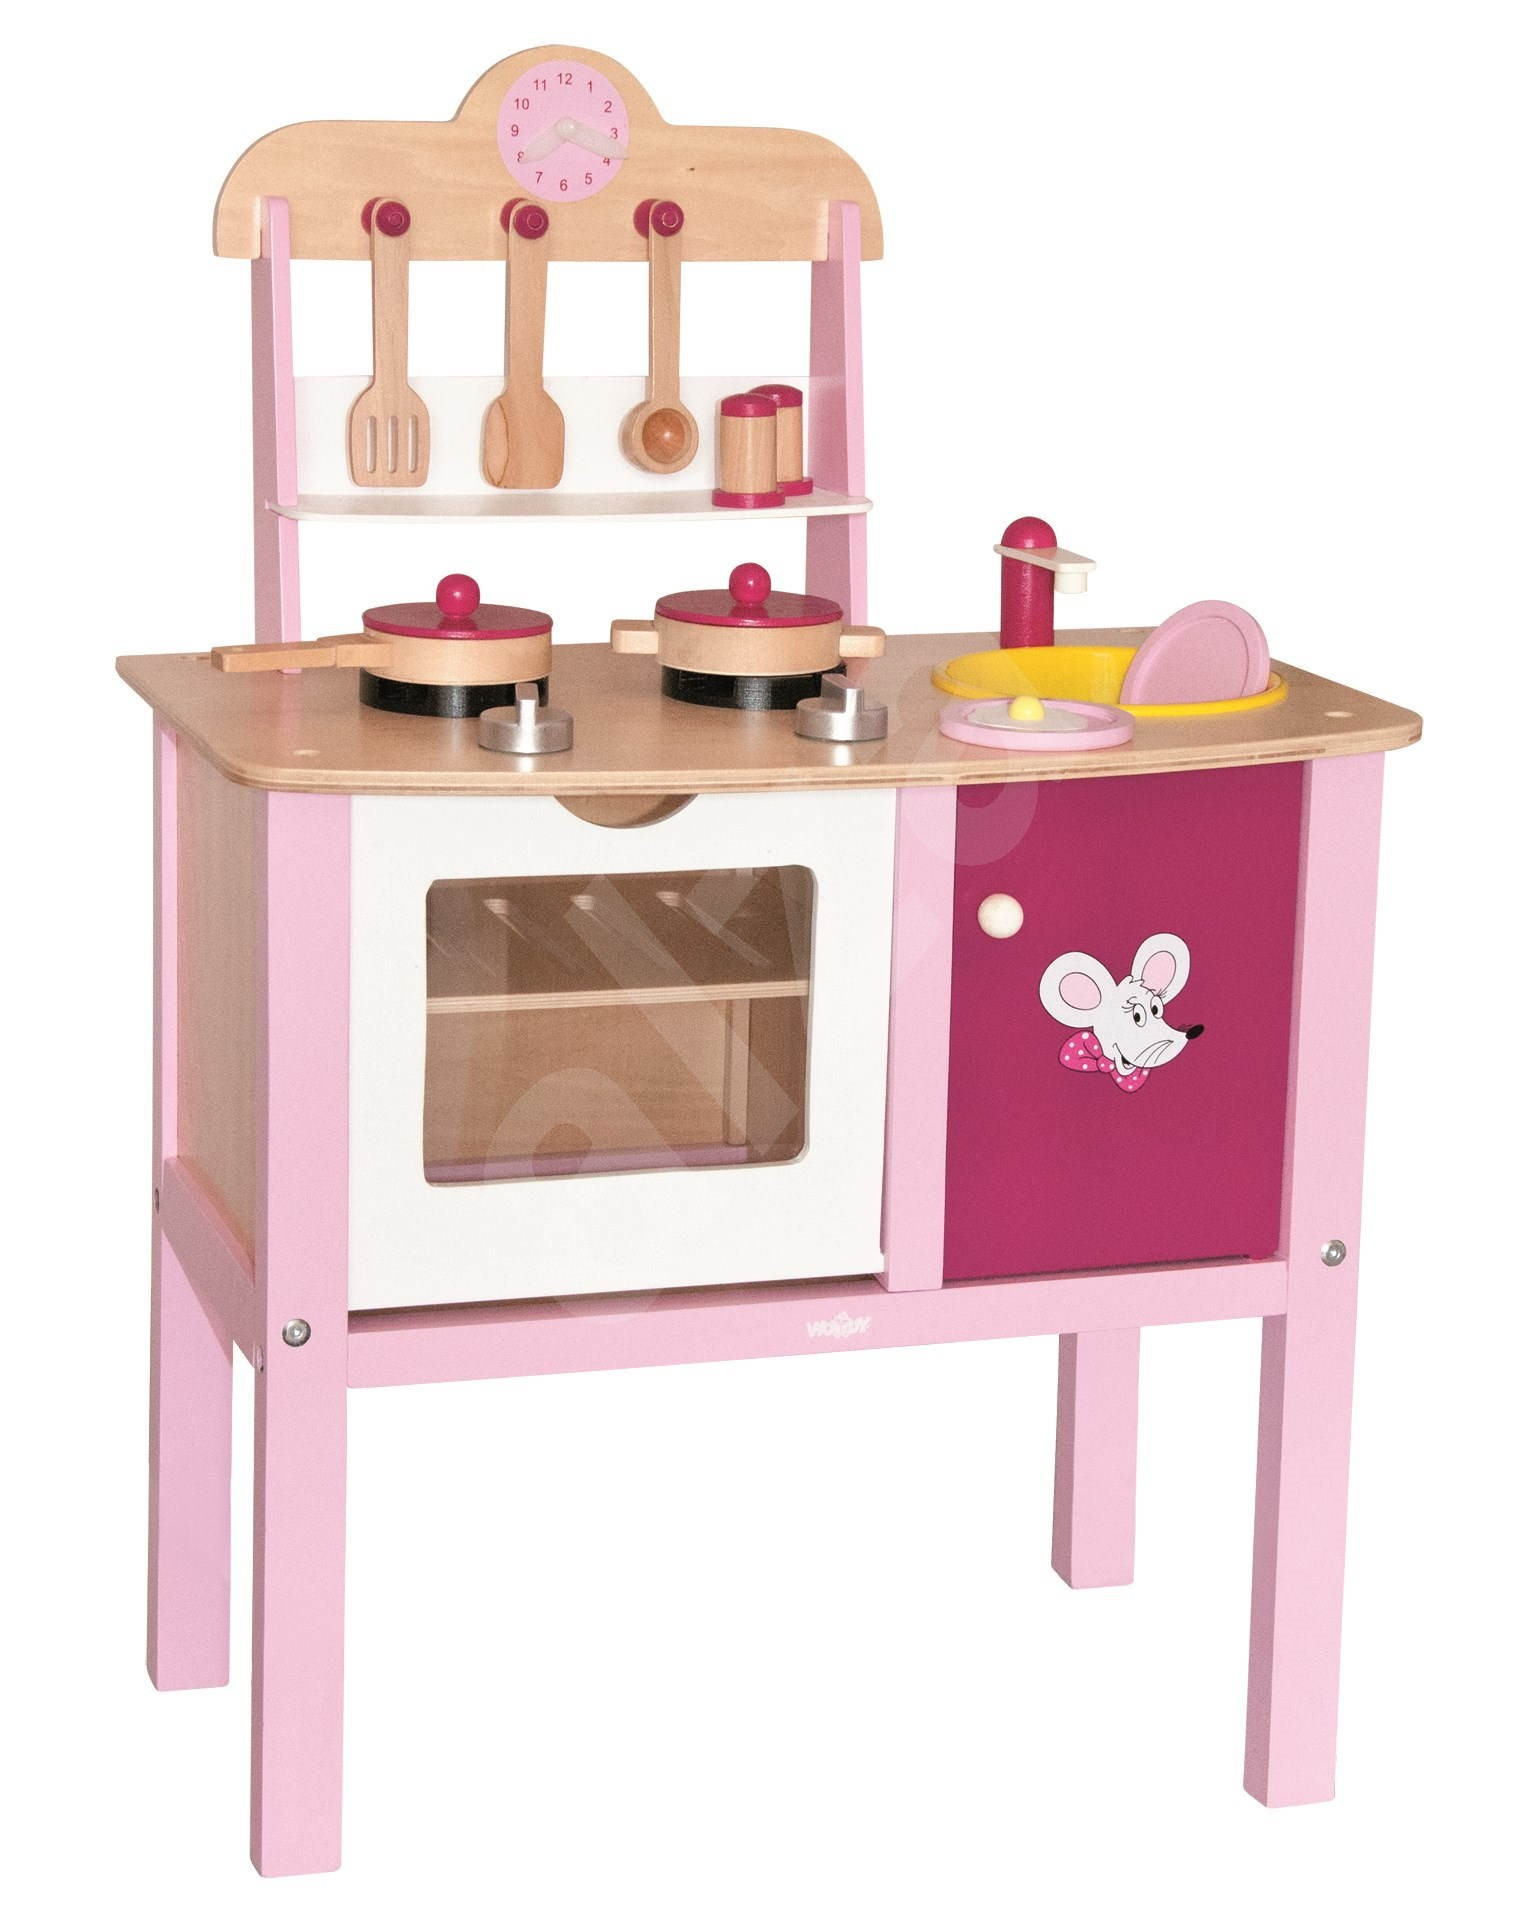 A small kitchen trendy children 39 s kitchen set for Small childrens kitchen